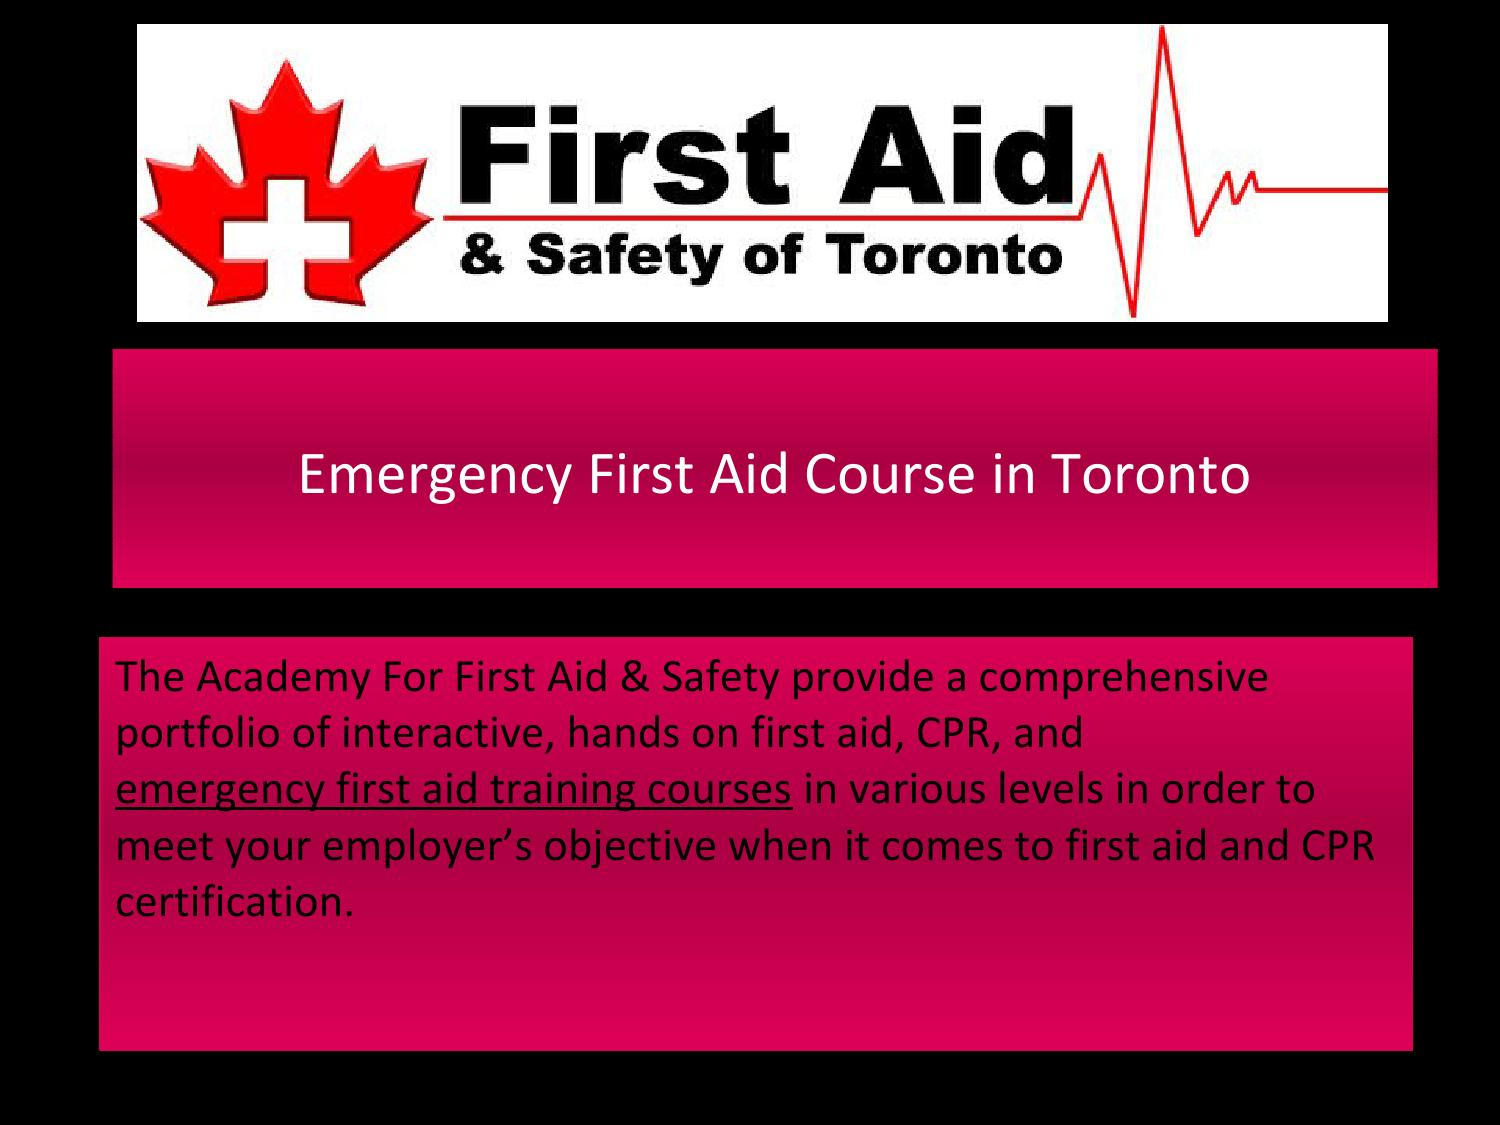 Emergency First Aid Course In Toronto By The Academy For First Aid